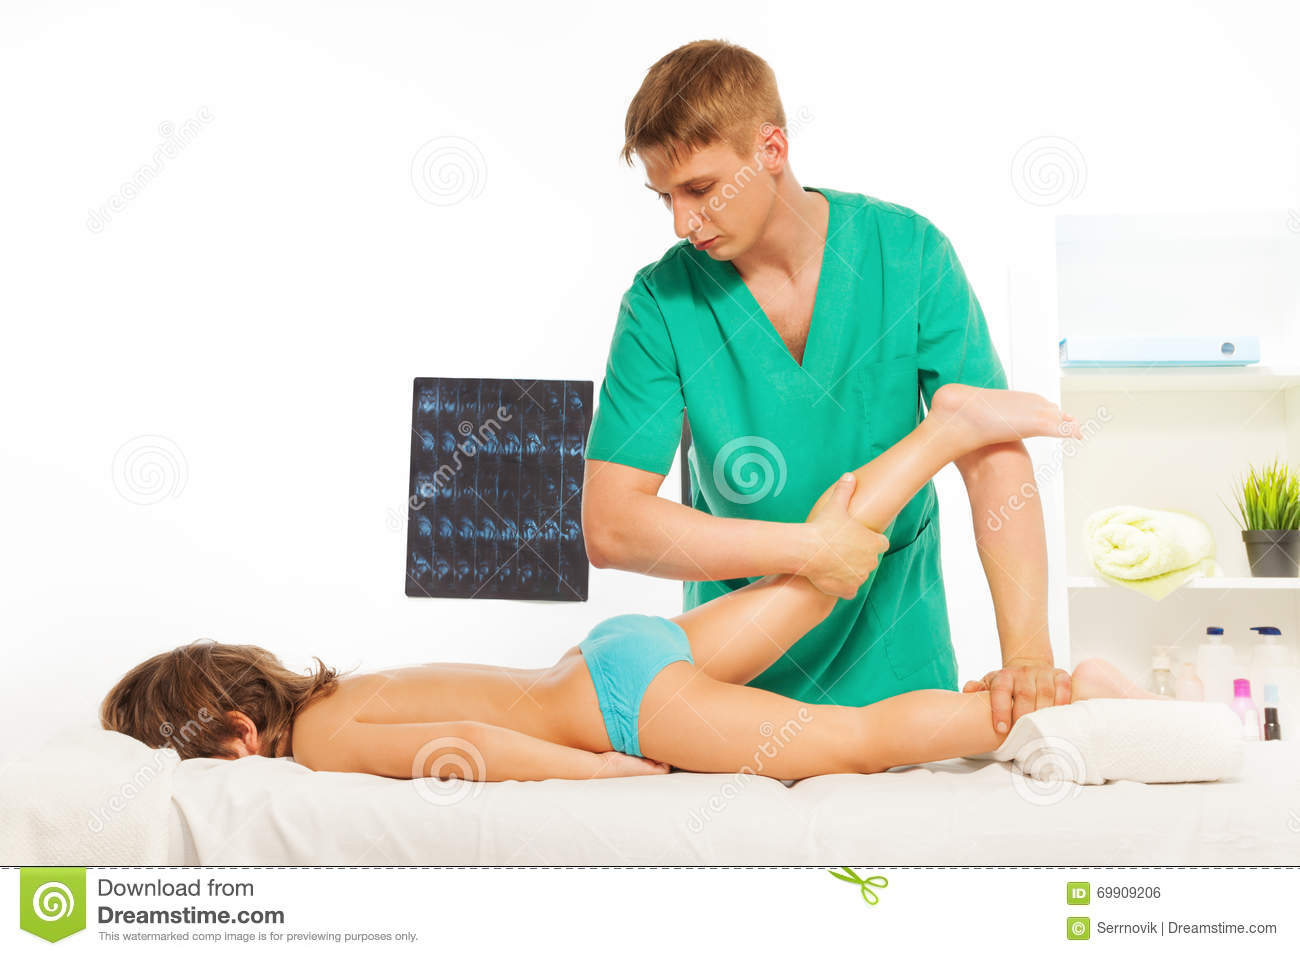 boy-medical-massage-dry-humping-porn